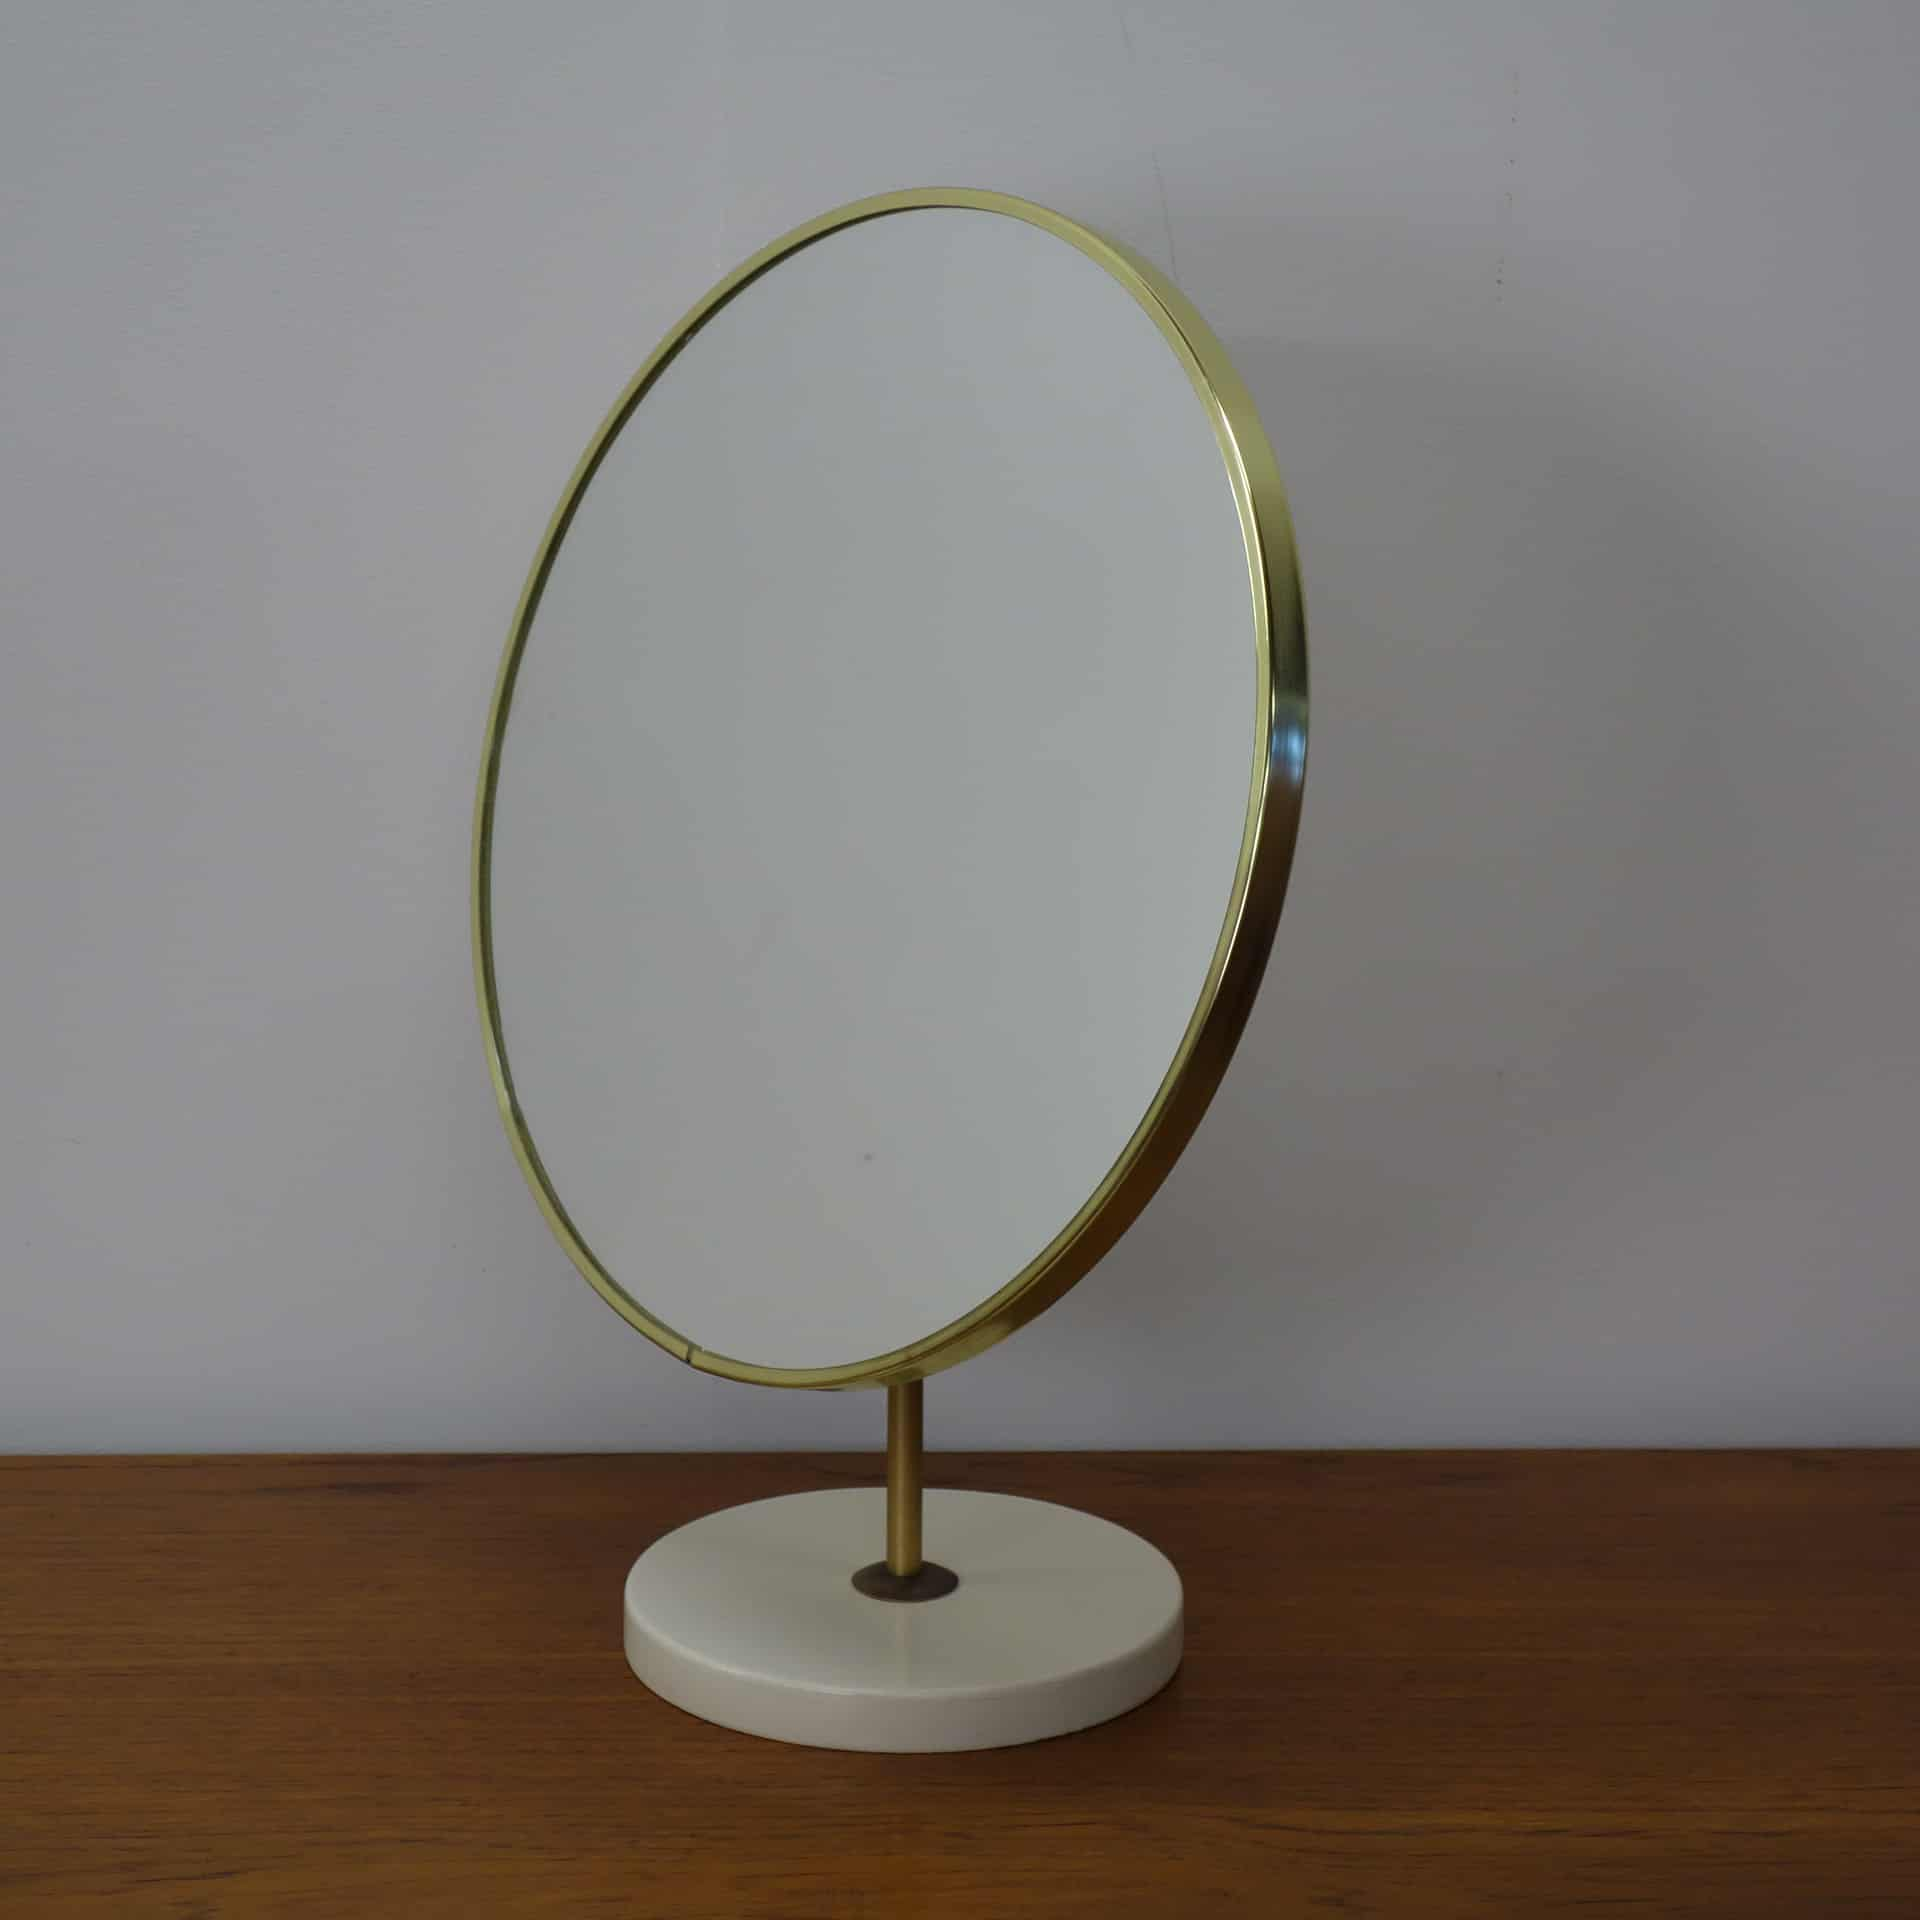 1970s White Table Top Mirror By Shreiber Mark Parrish